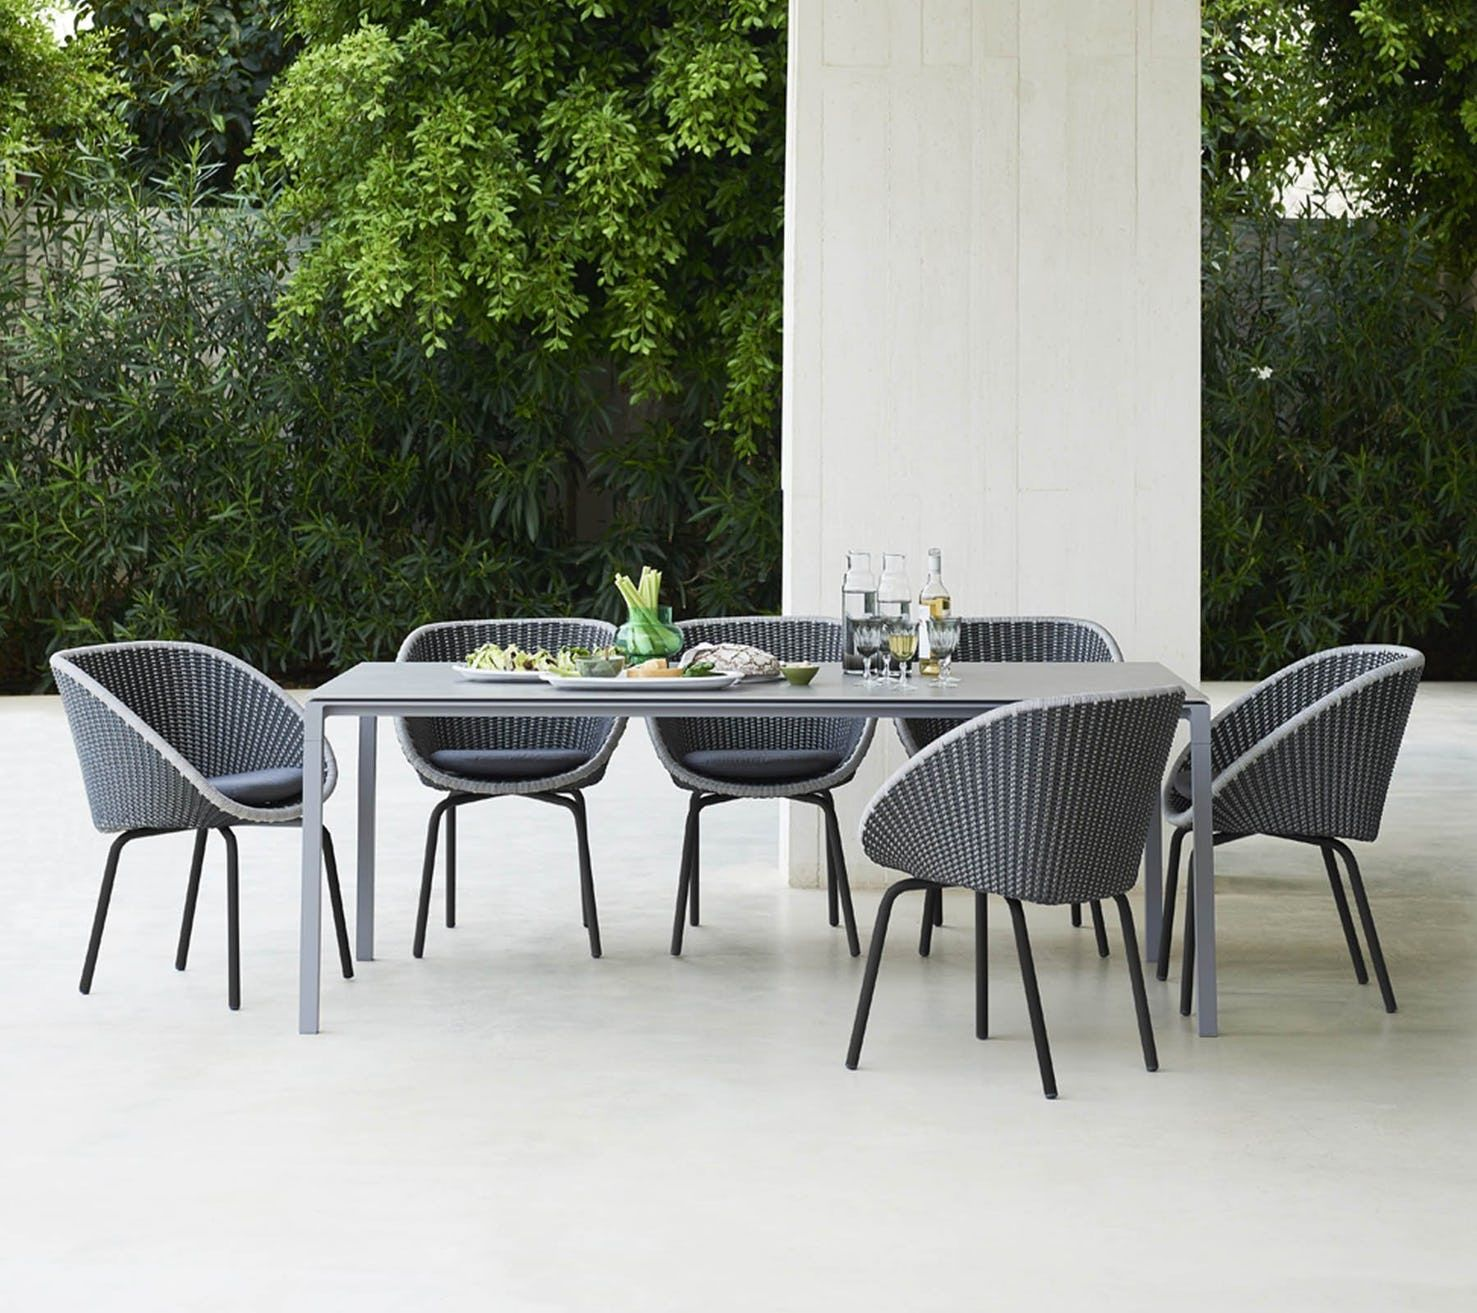 Peacock Dining Chair By Cane Line Modern Outdoor Dining Outdoor Dining Chairs Clearance Patio Furniture